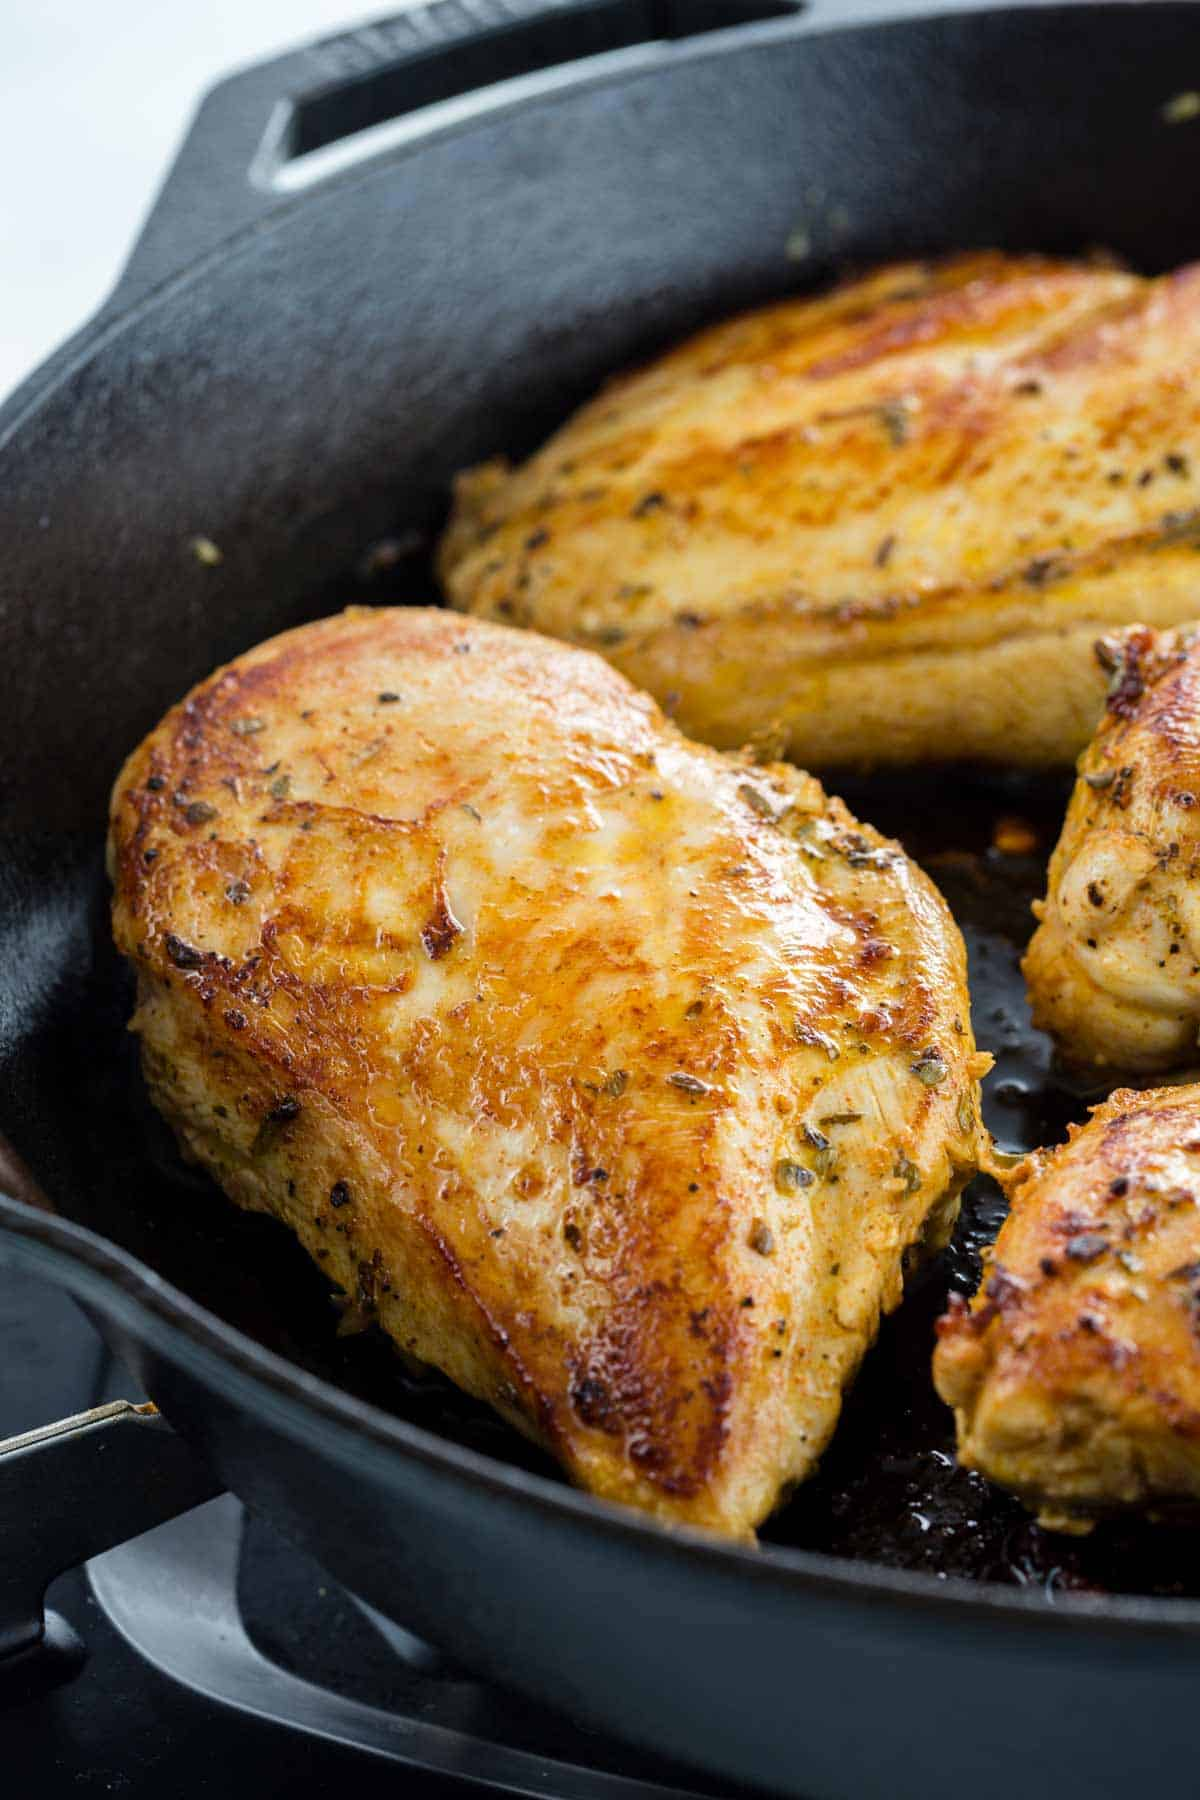 Chicken breast with maillard reaction showing a golden brown crust cooking in a cast iron pan